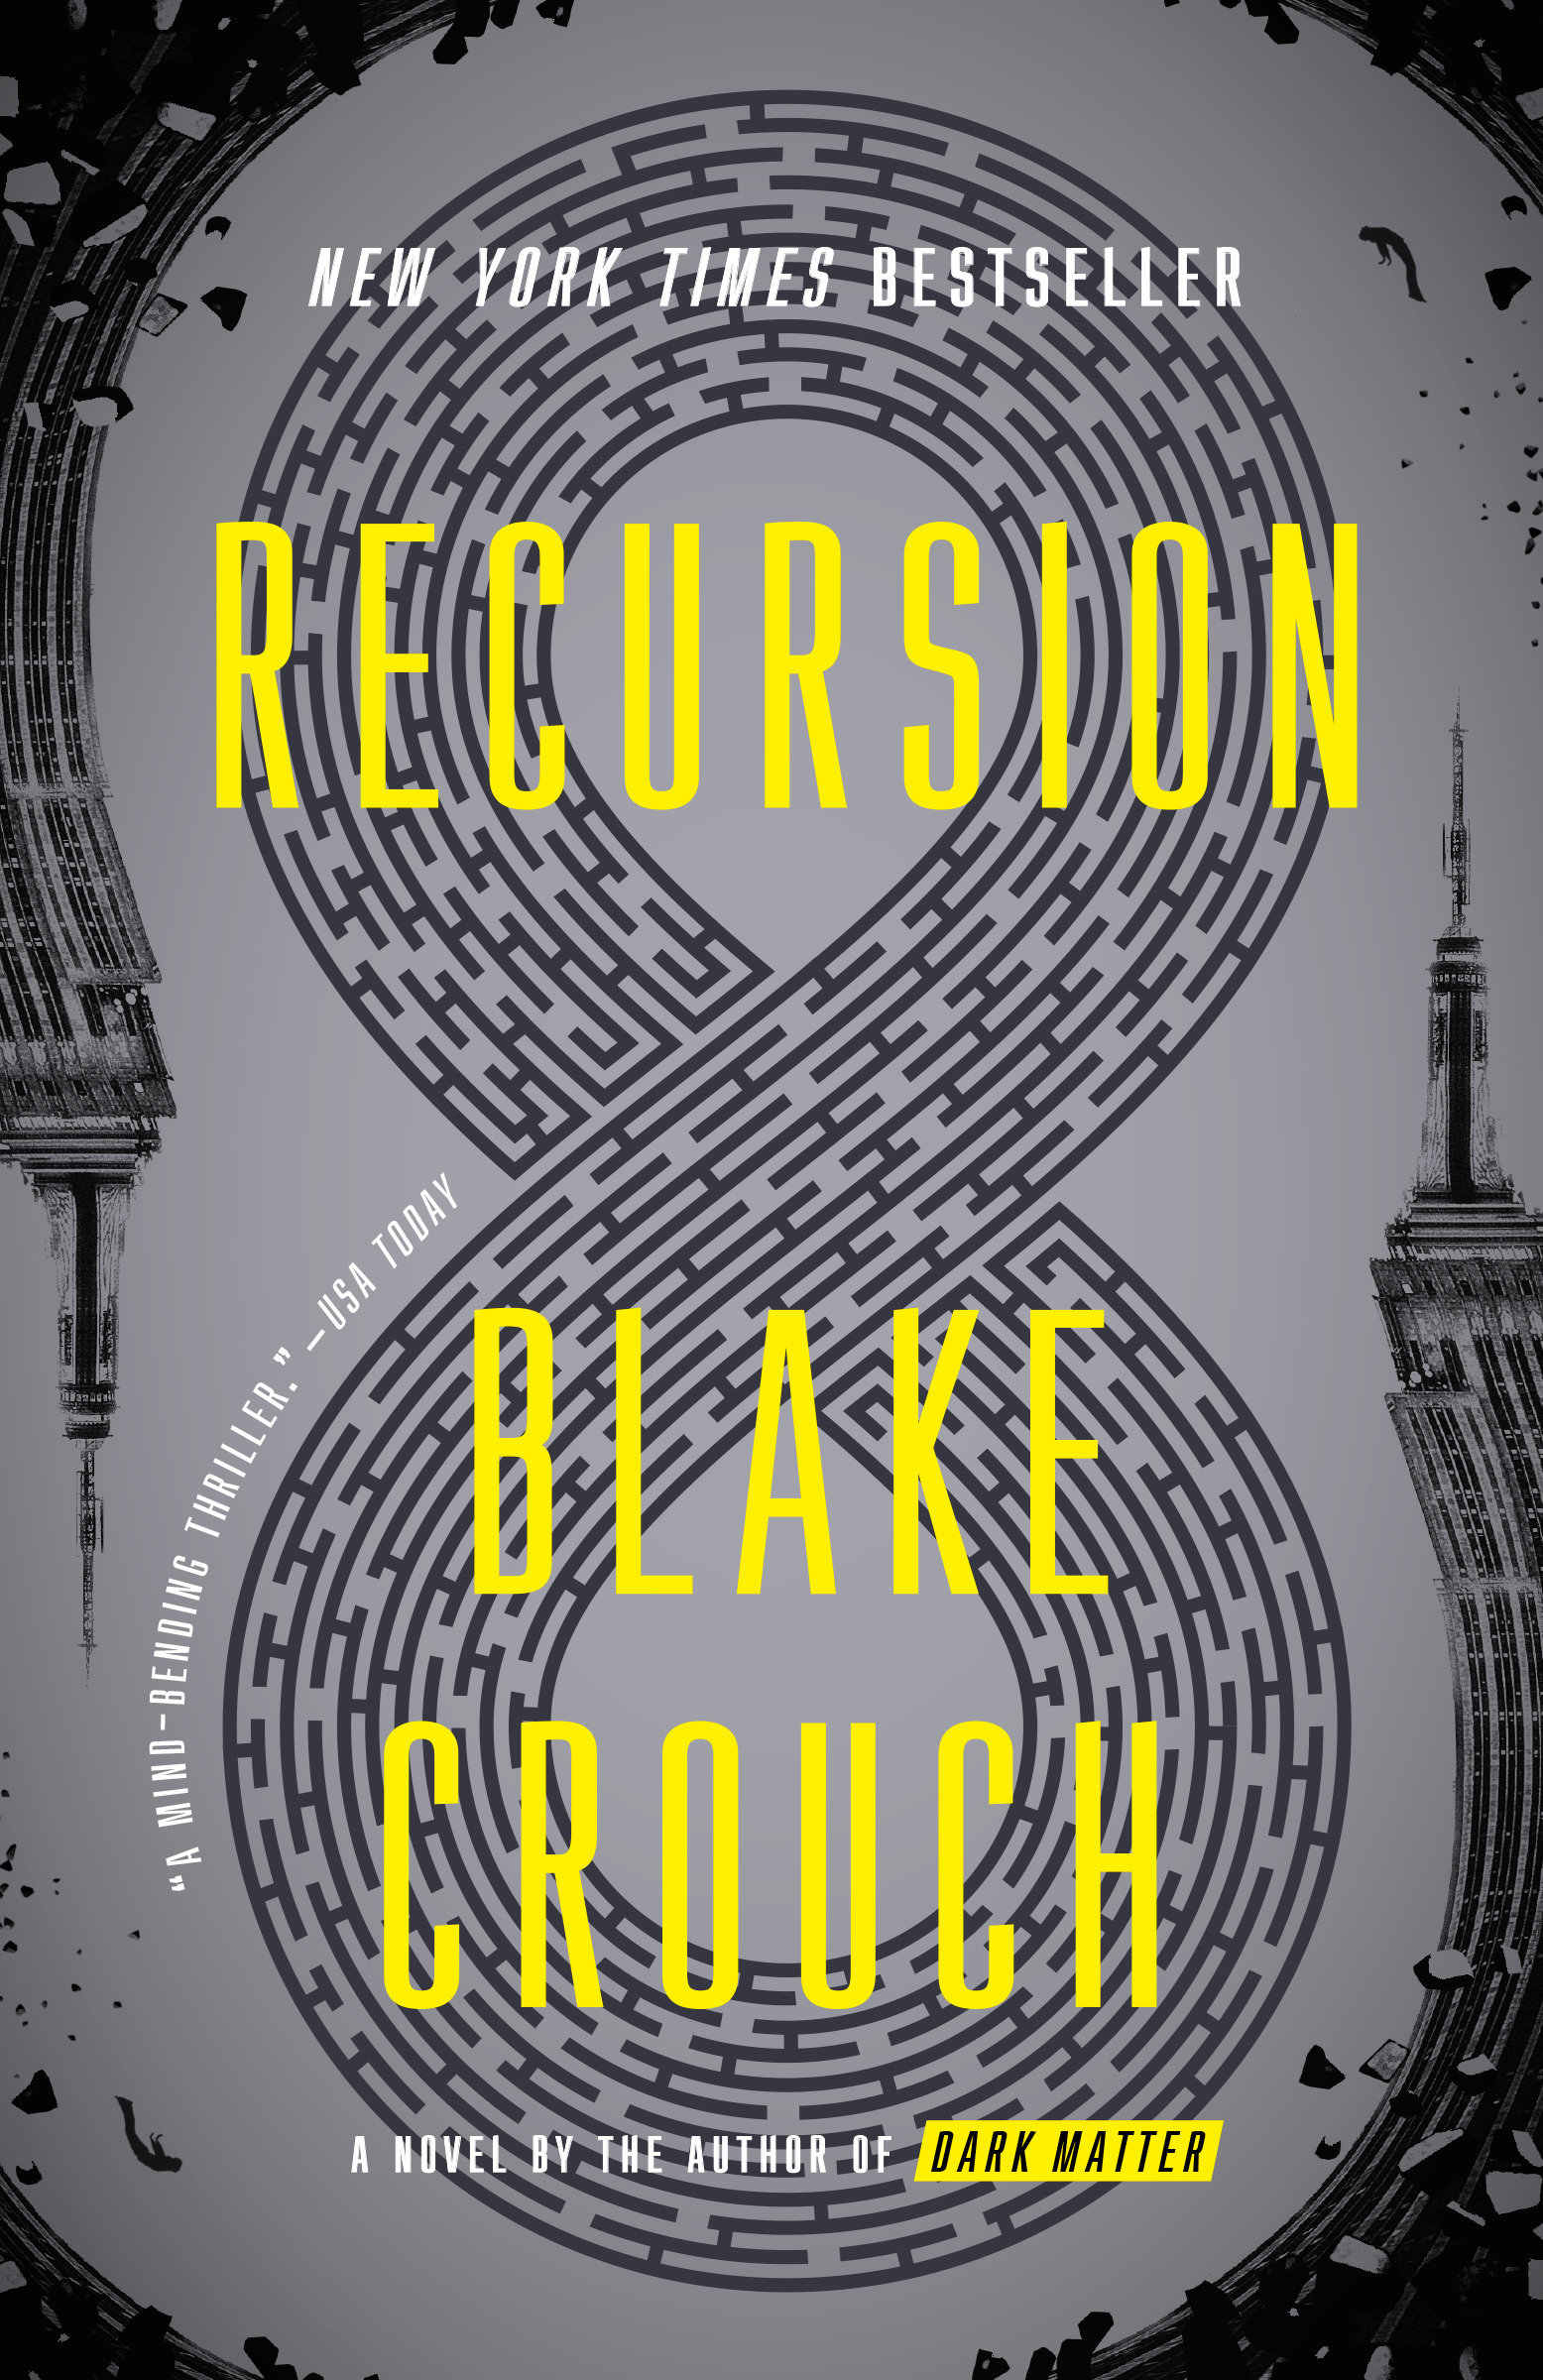 Recursion [electronic resource] : A Novel